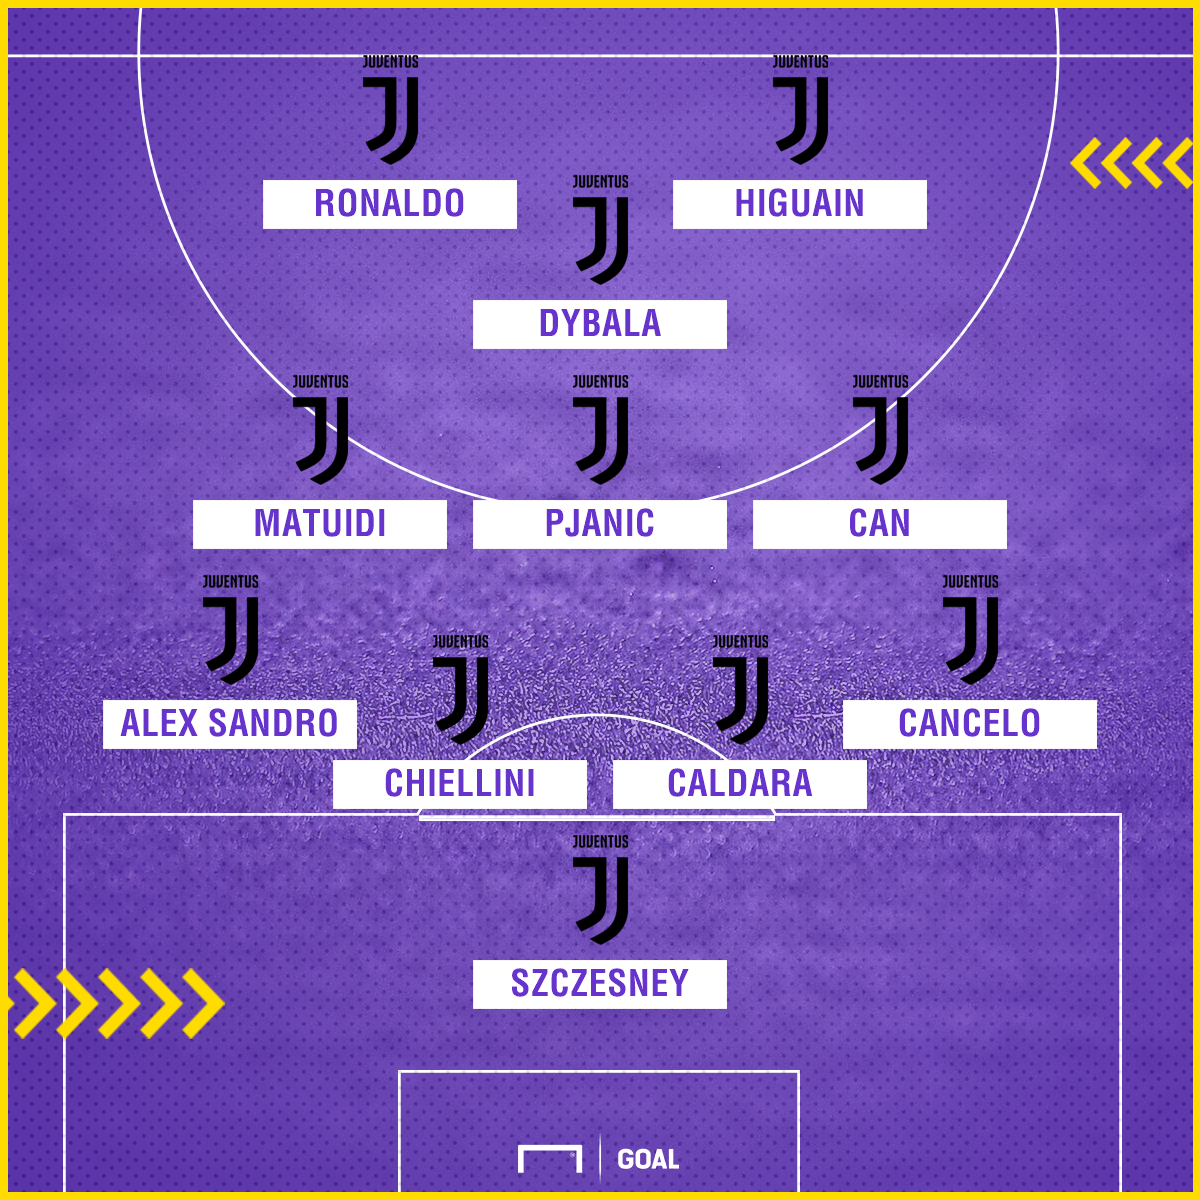 The composition of Juventus in the season 2018 - 2019 45